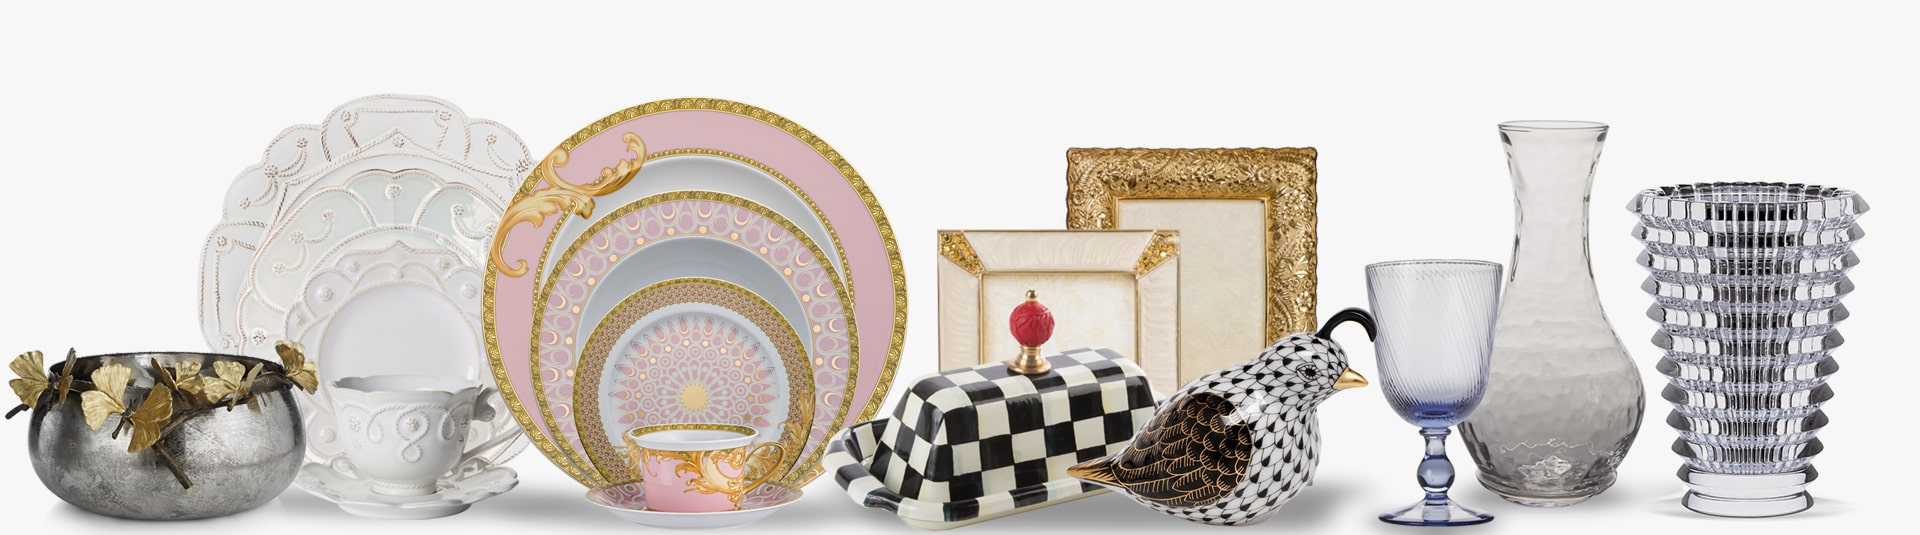 Louis Anthony Jewelers Giftware and Bridal Registry